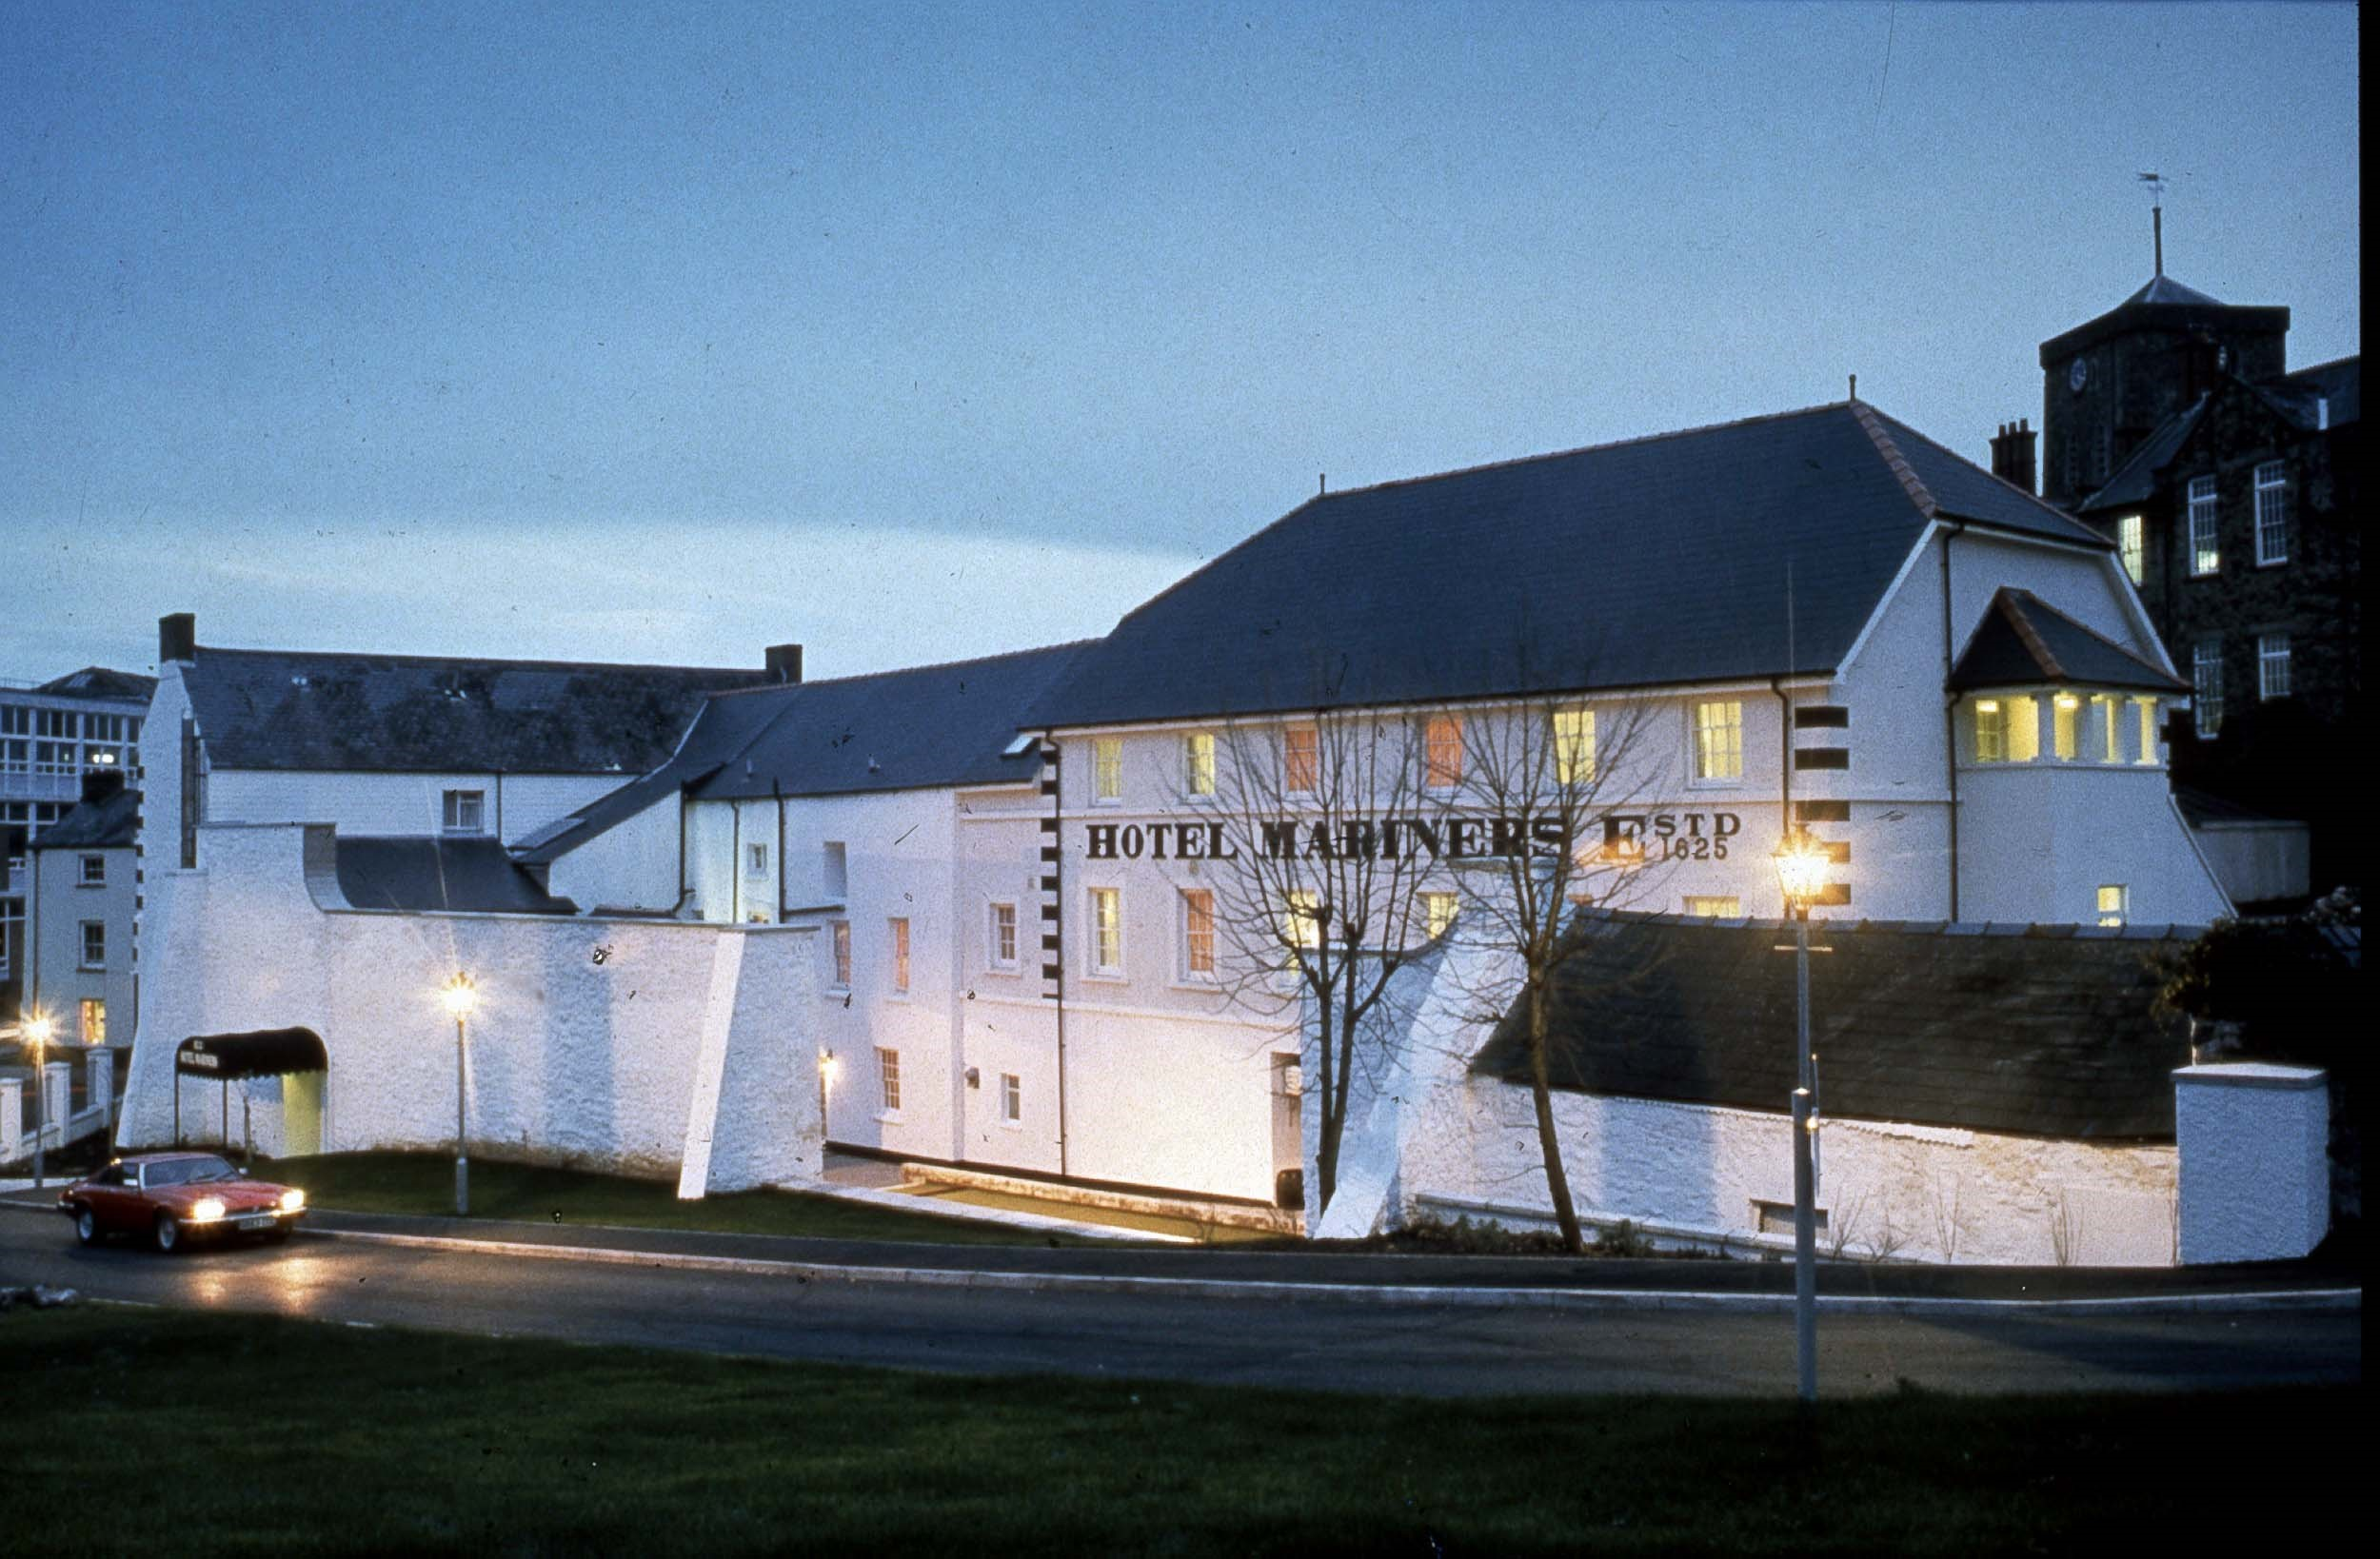 Hotel Mariners Haverfordwest